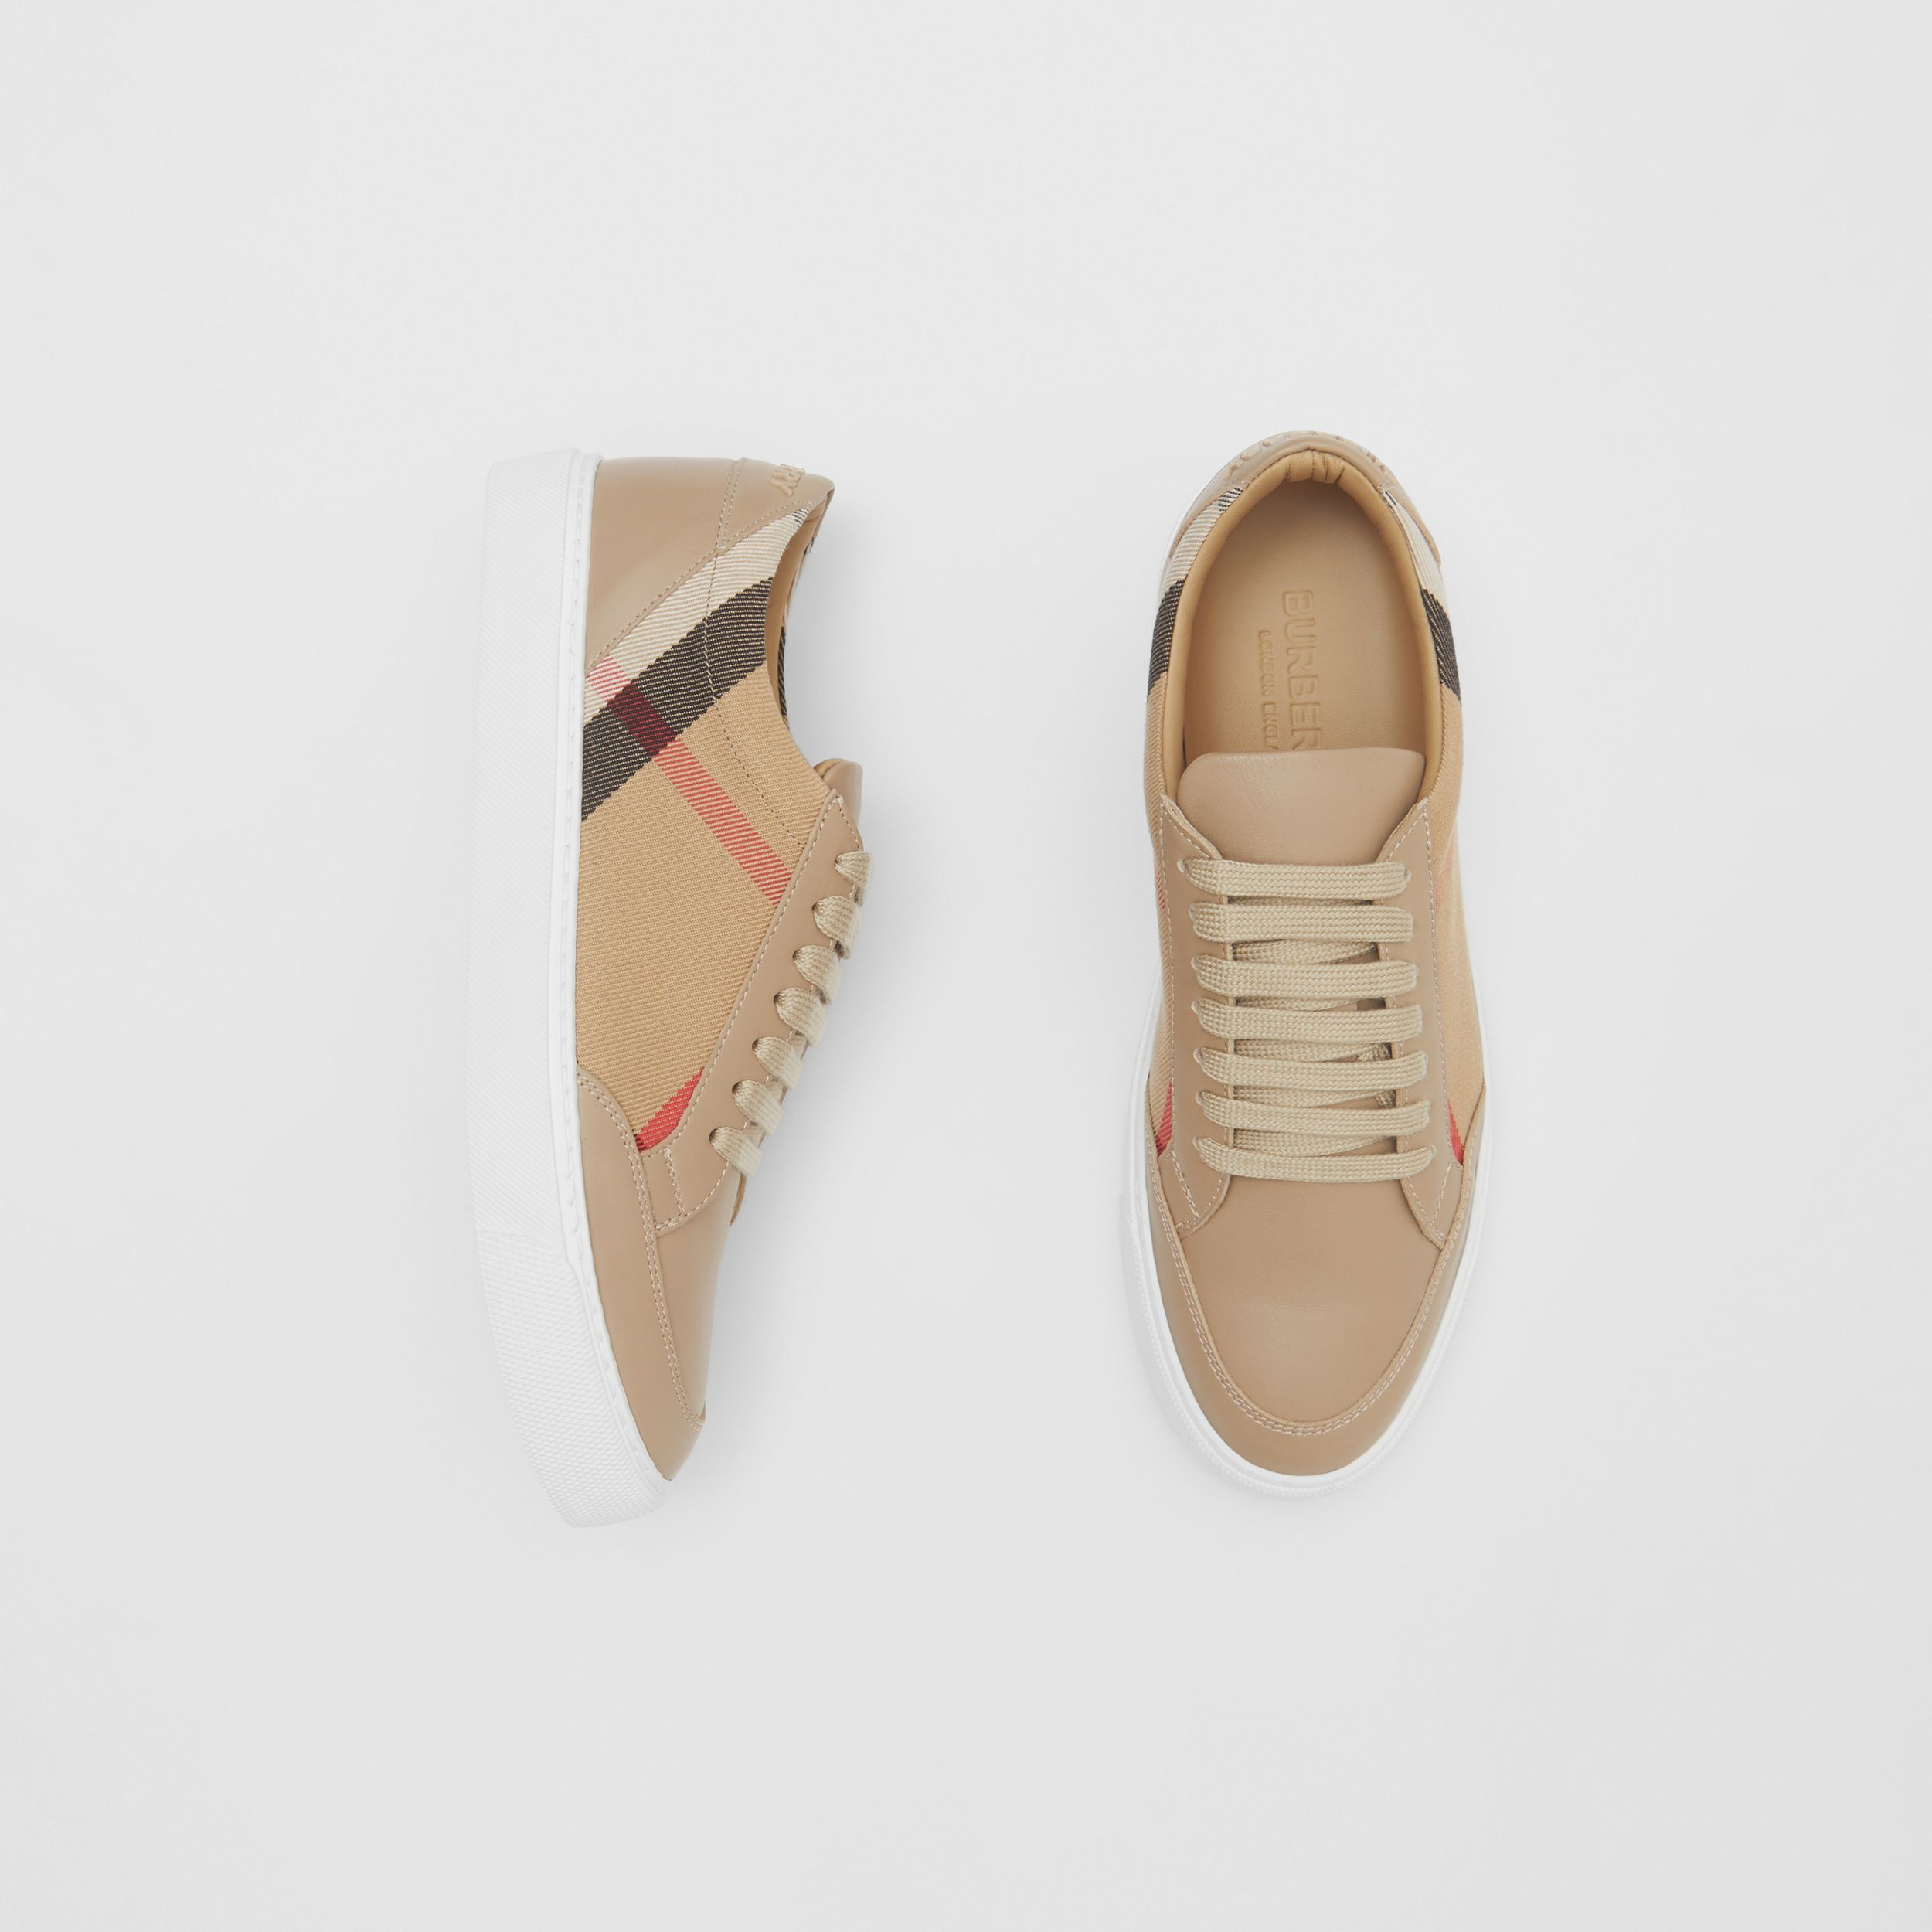 House Check and Leather Sneakers in Tan - Women | Burberry - 1